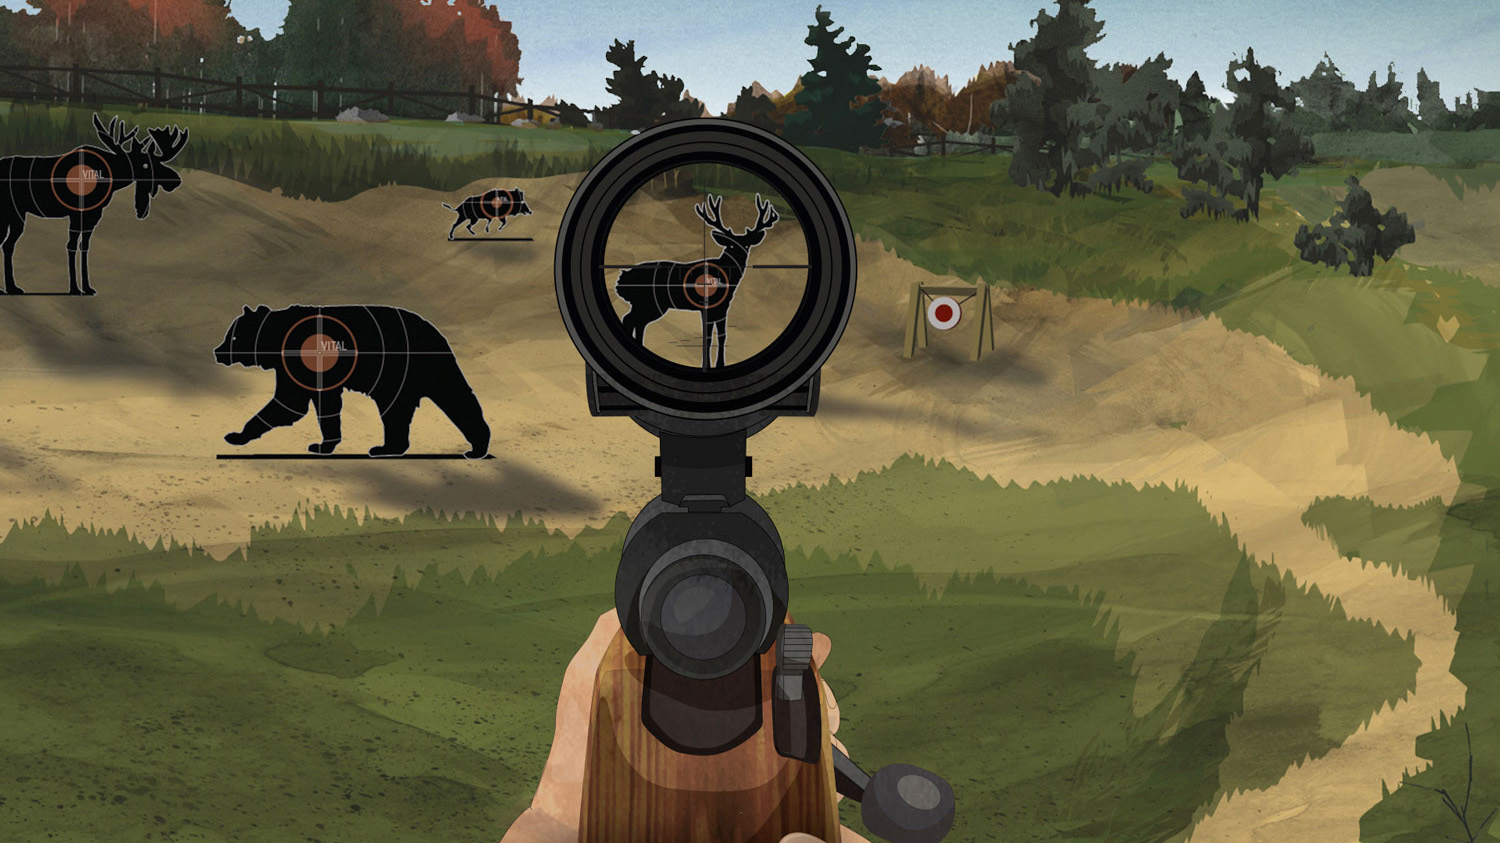 Illustration of a hunter's hands pointing a firearm at a deer target with the sight focused on the game's vital zone.